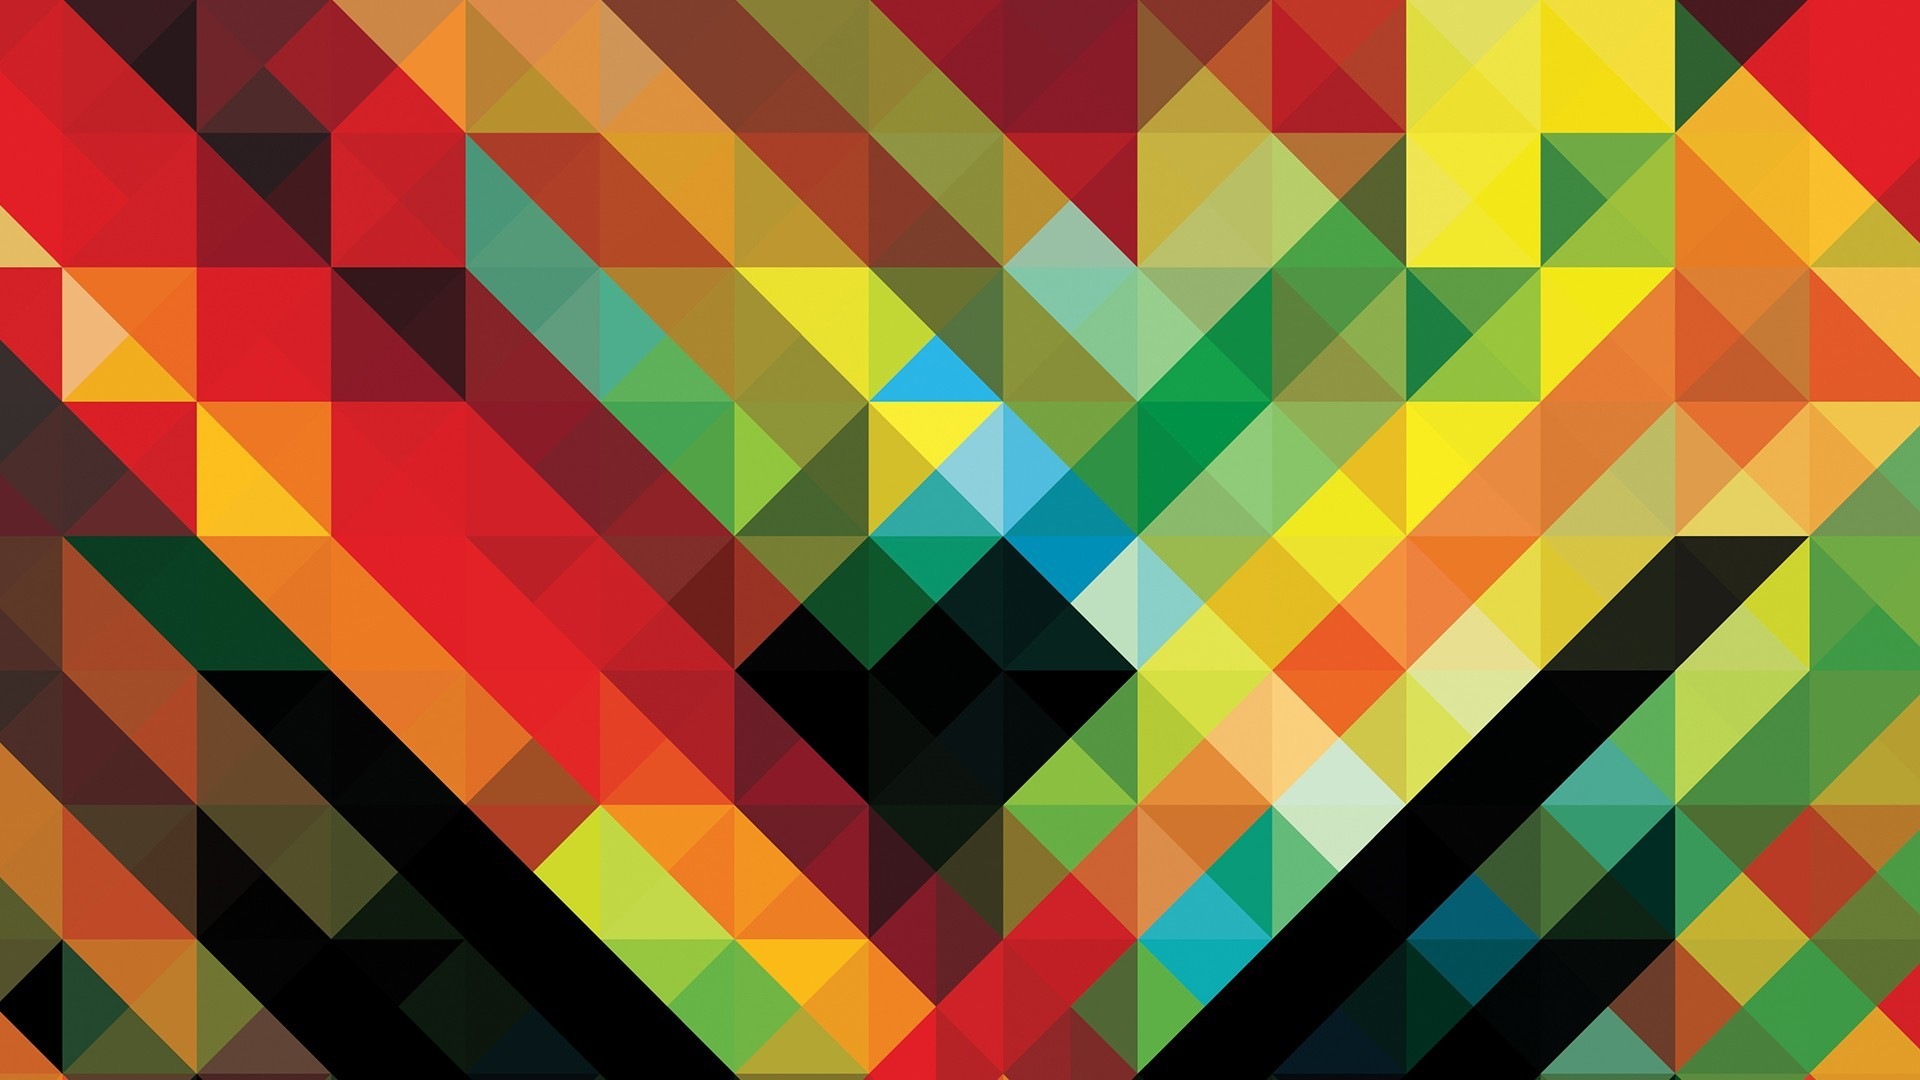 Free Colorful Geometric Wallpaper: Geometric Wallpapers For Desktop (63+ Images